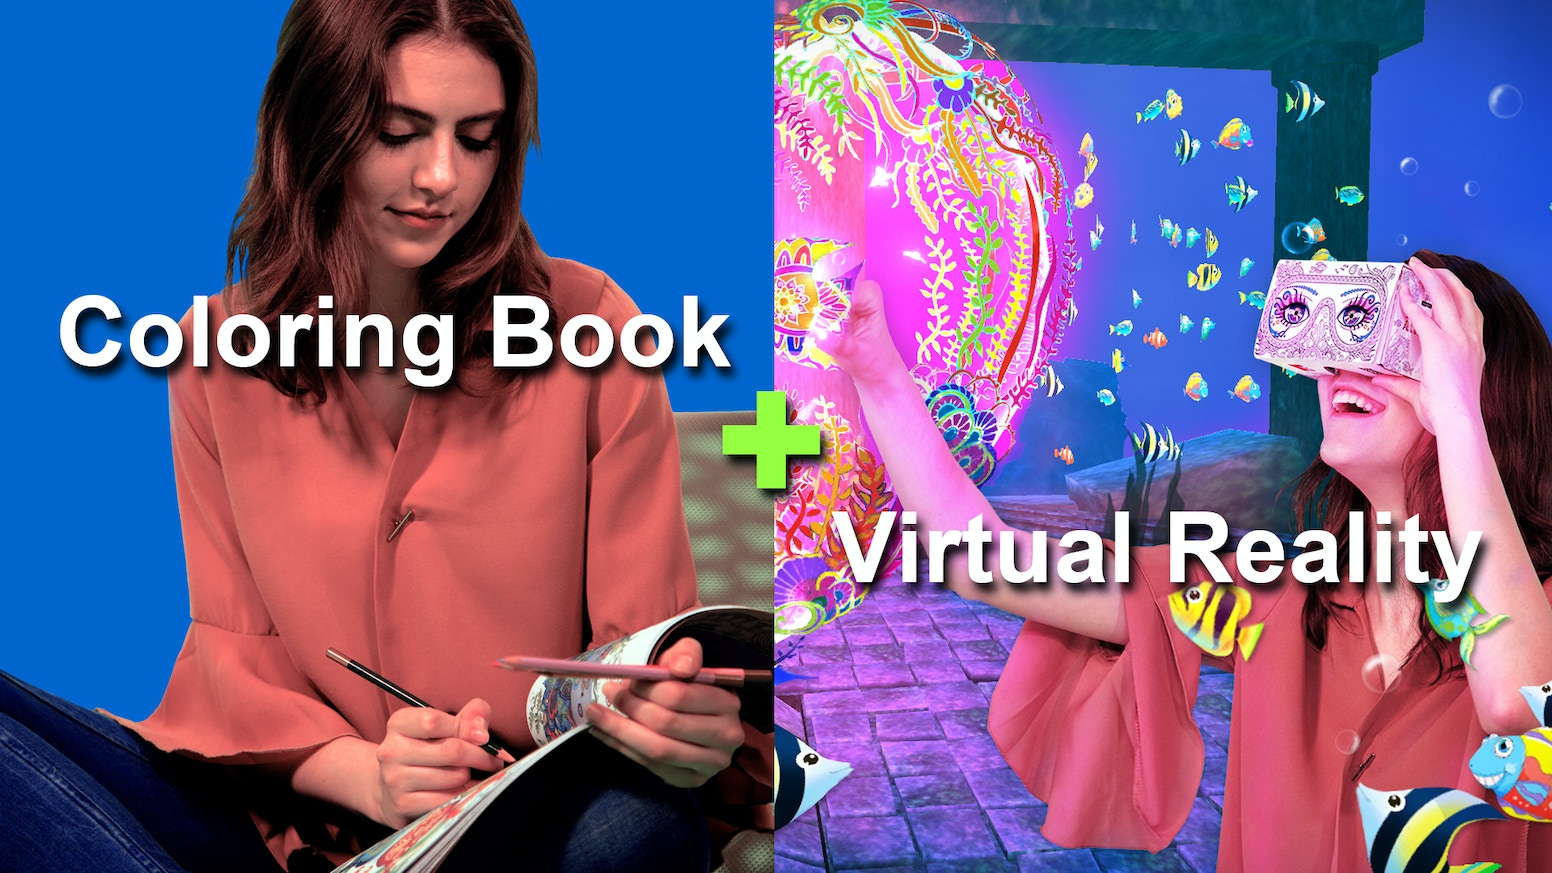 Imagine VR An Interactive Coloring Book